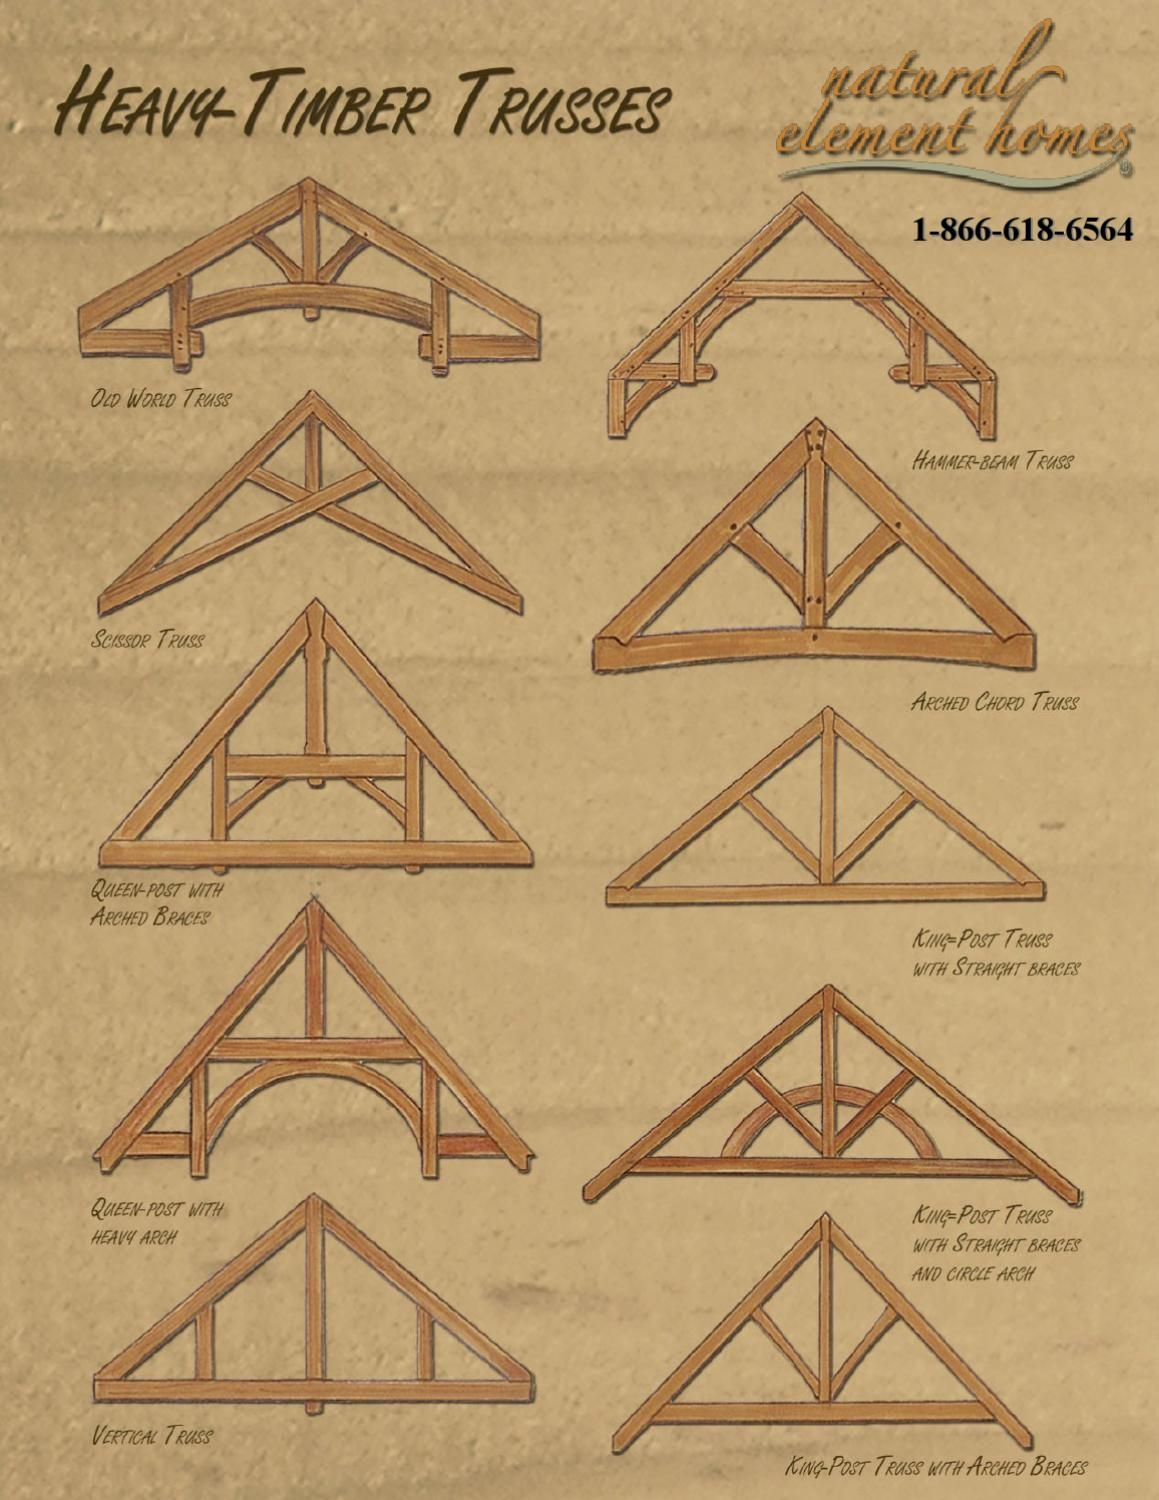 TFBS and Options for | Exterior siding, Timber frame homes